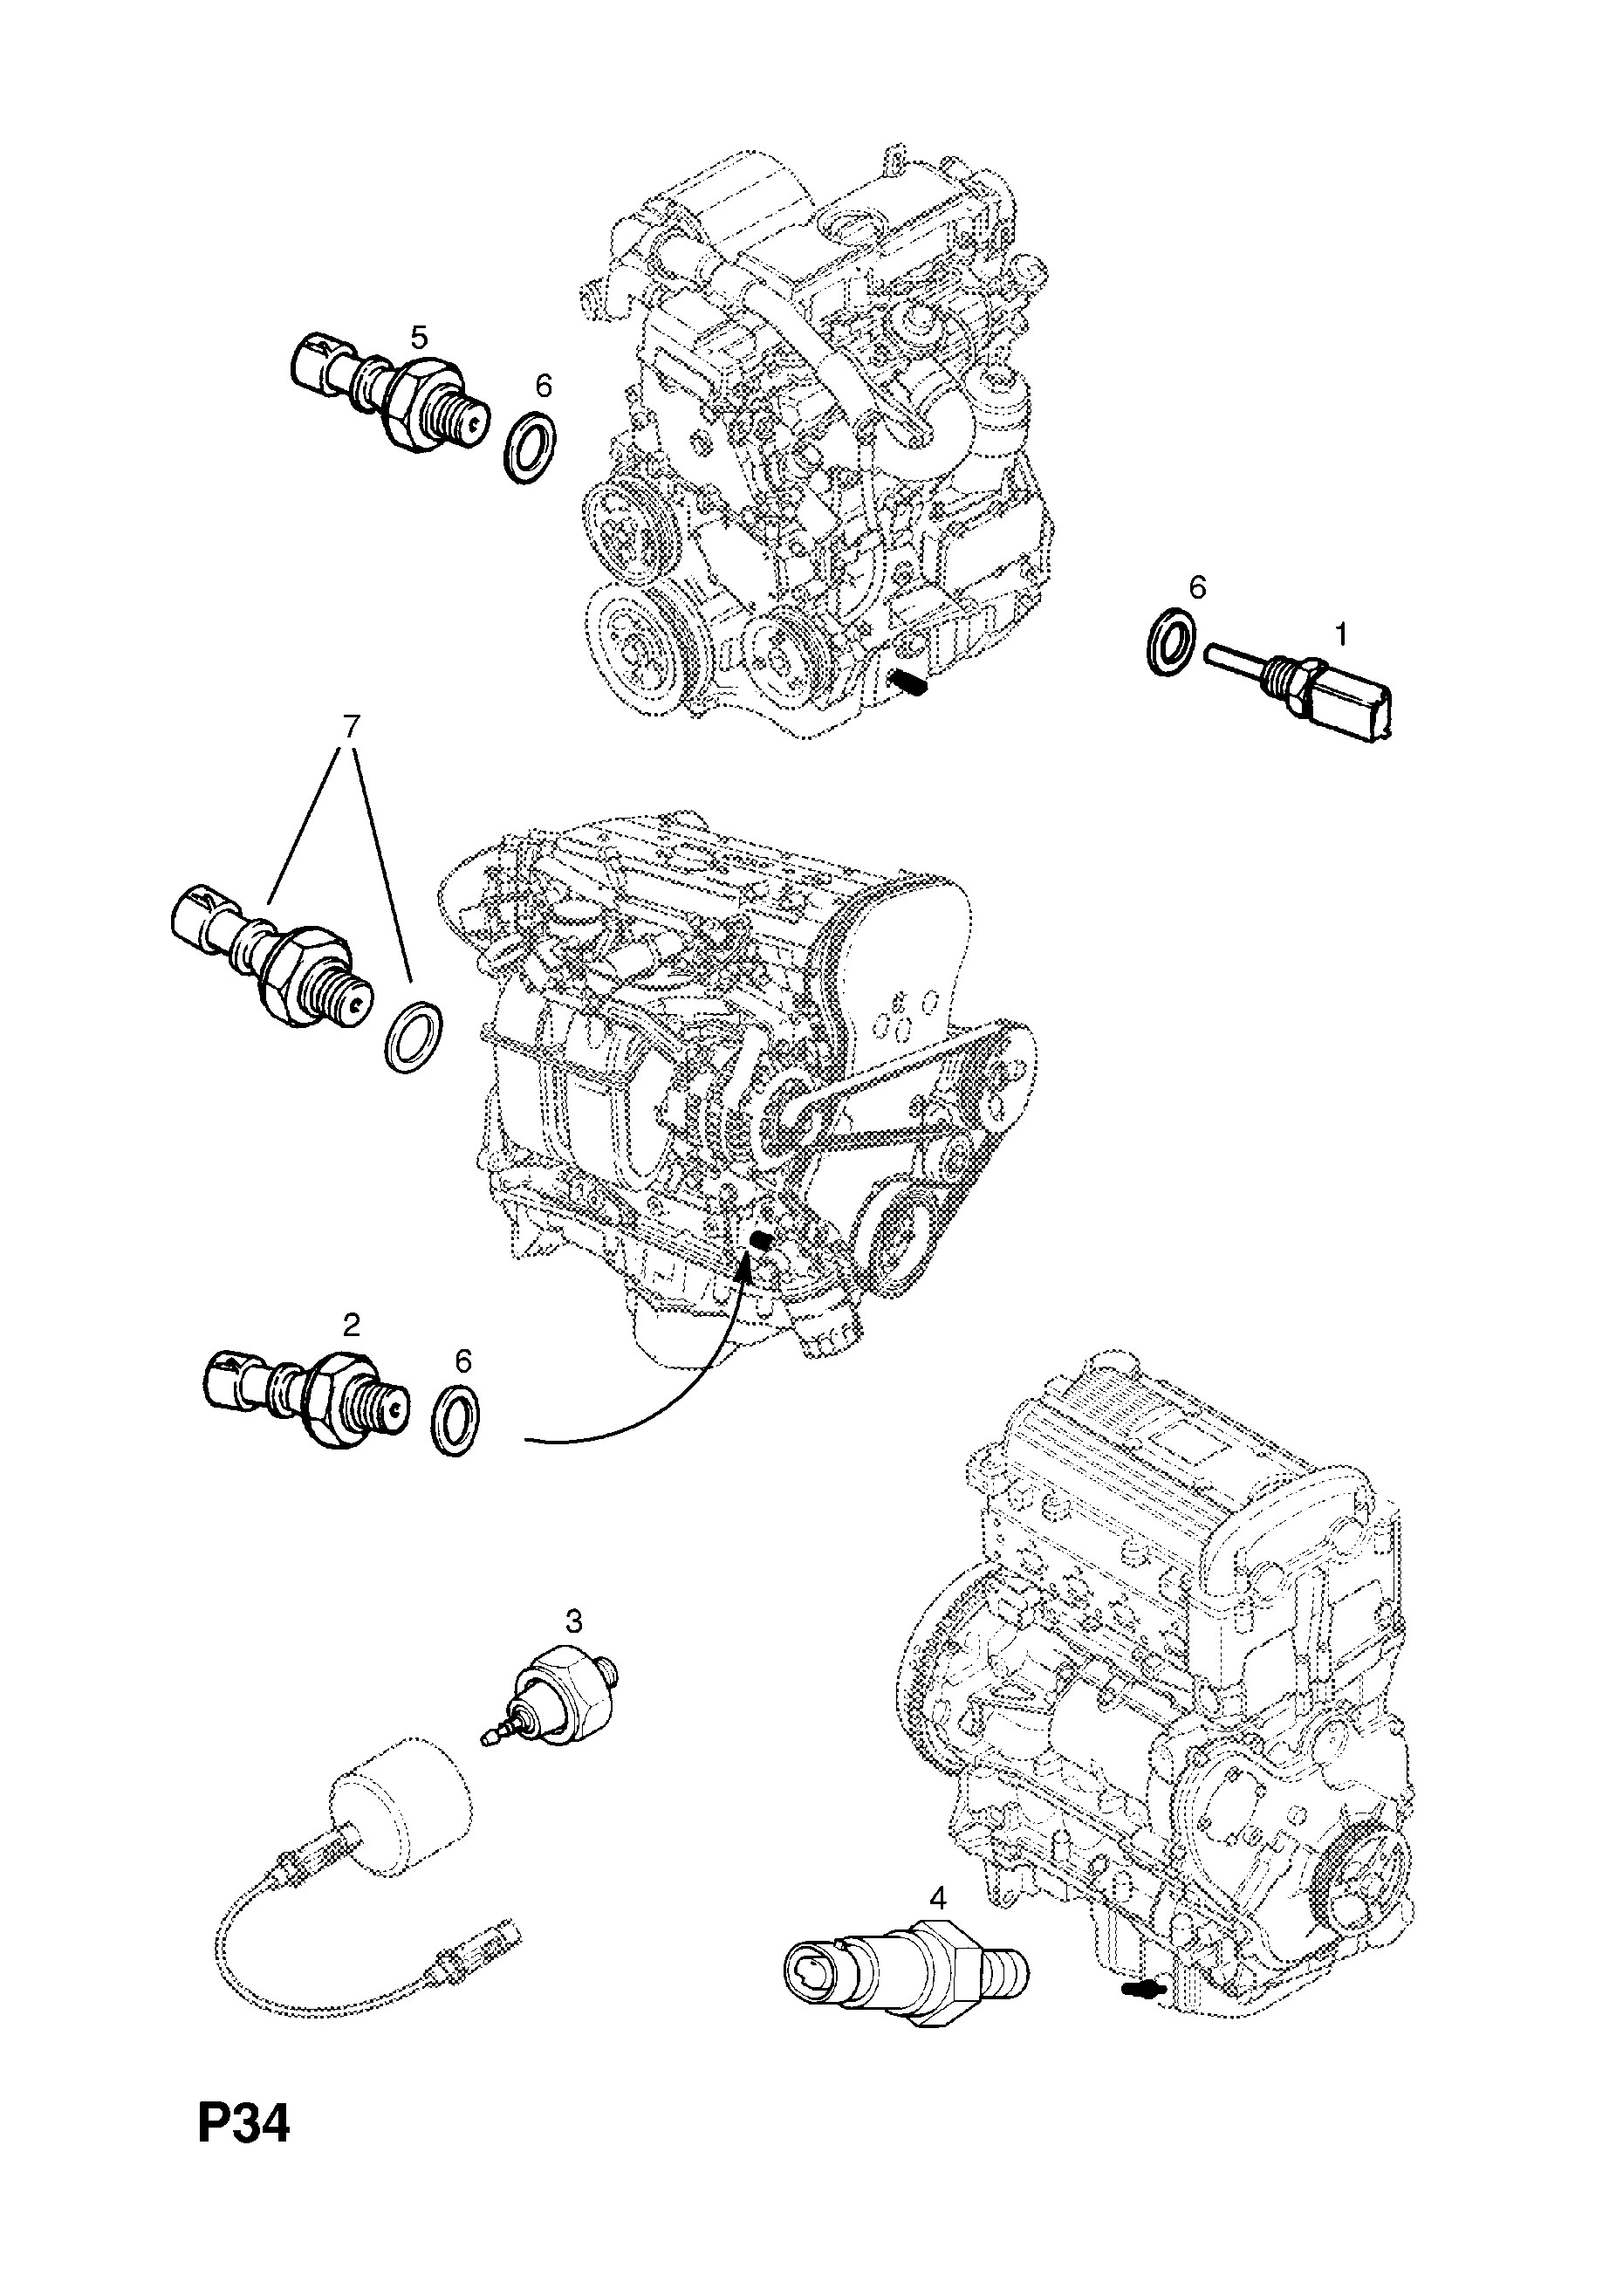 Vauxhall Astra G 1998 2010 P Electrical 1 Engine And Cooling Opel Diagram List Of Parts